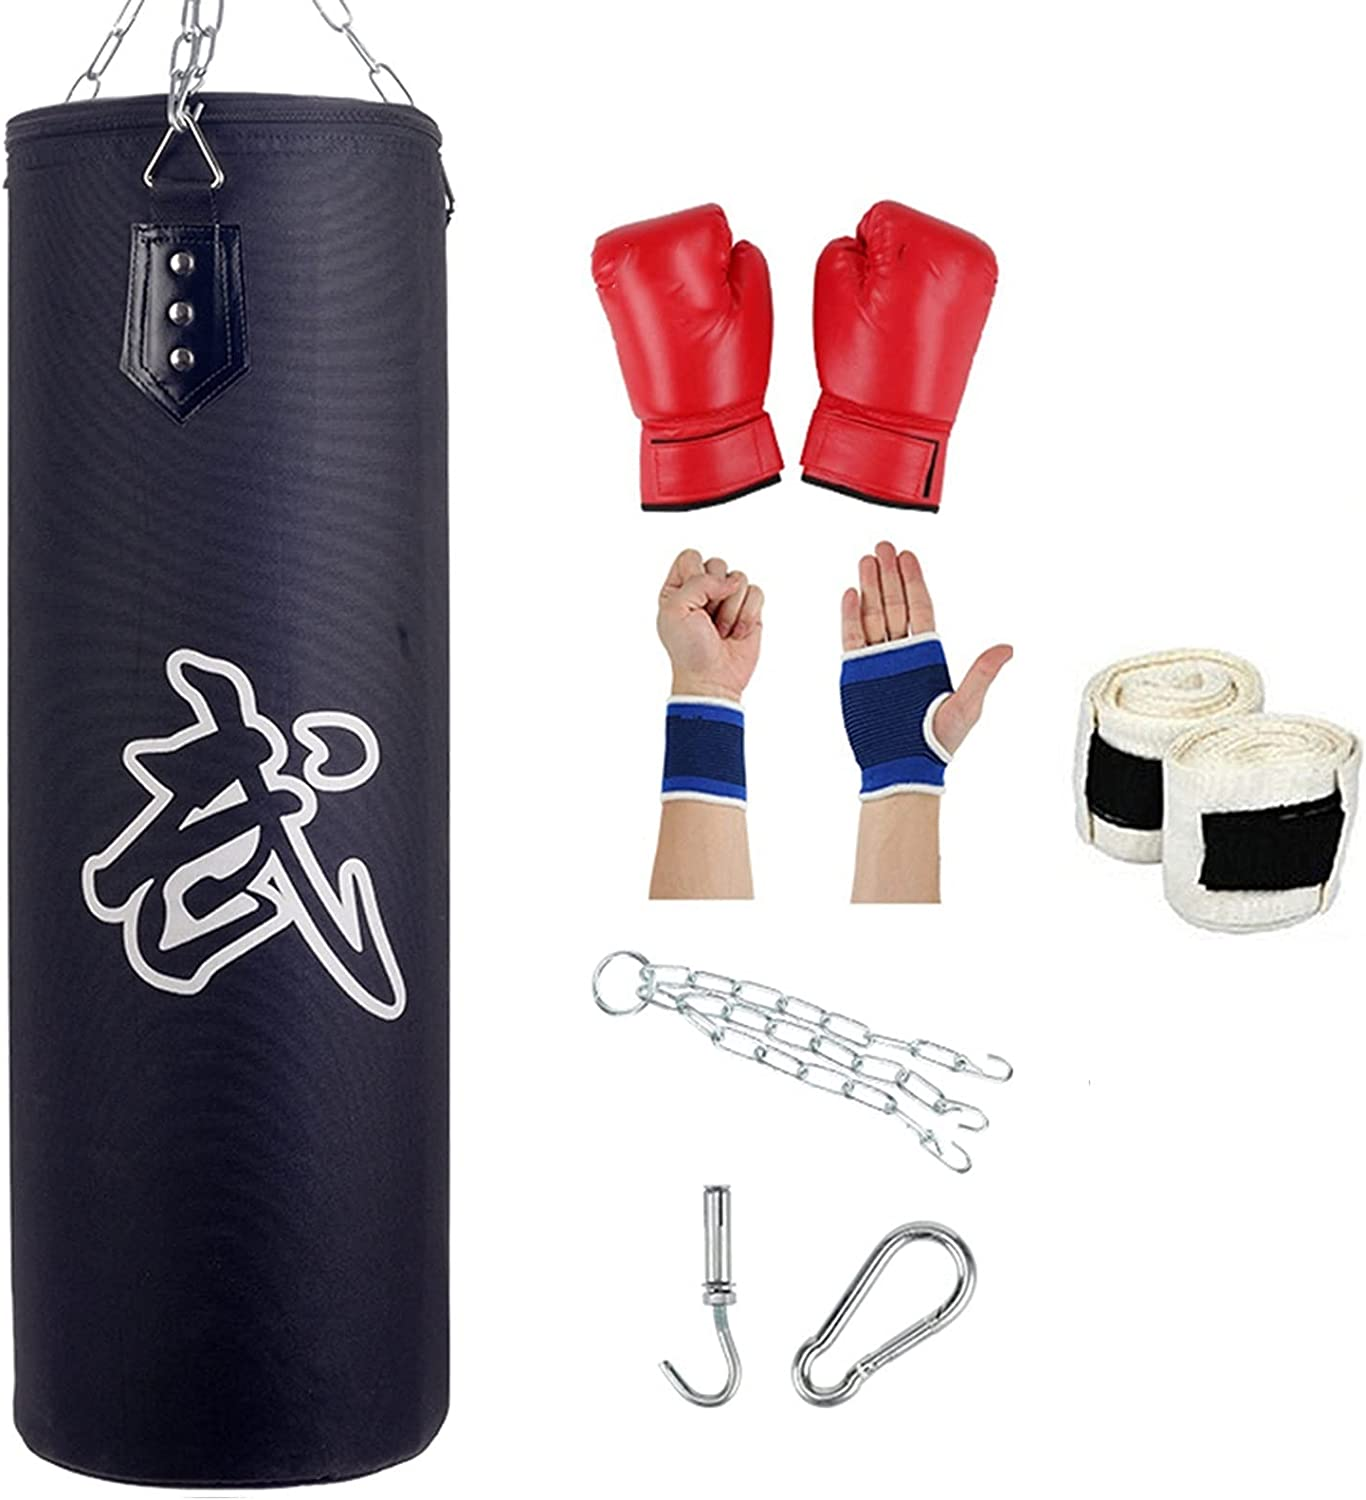 Max 83% OFF ZWJ Wall Punch Outlet ☆ Free Shipping Bag Body W Thick High-Grade Sandbag and